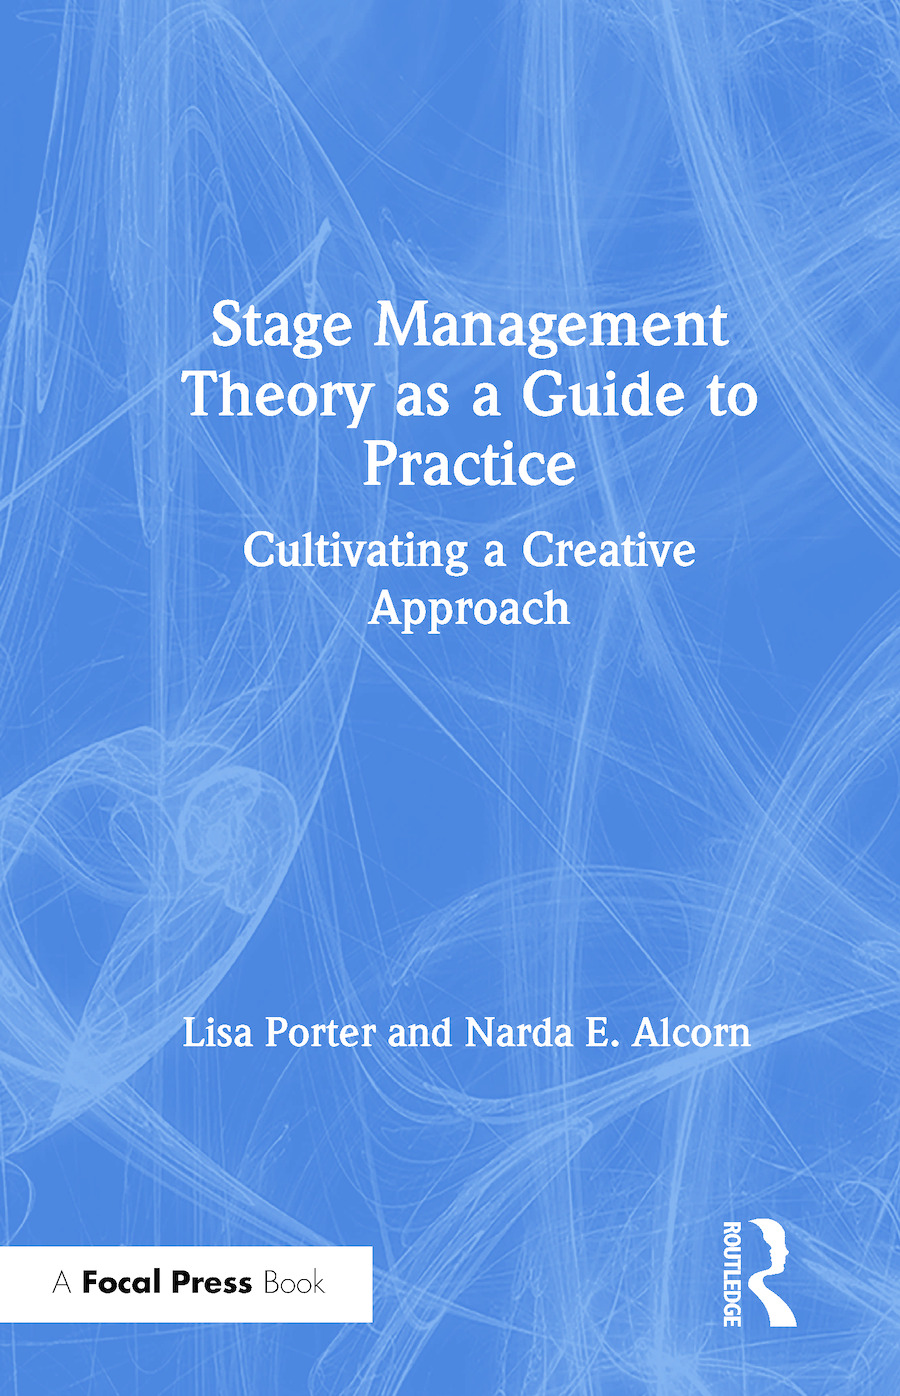 Stage Management Theory as a Guide to Practice: Cultivating a Creative Approach book cover